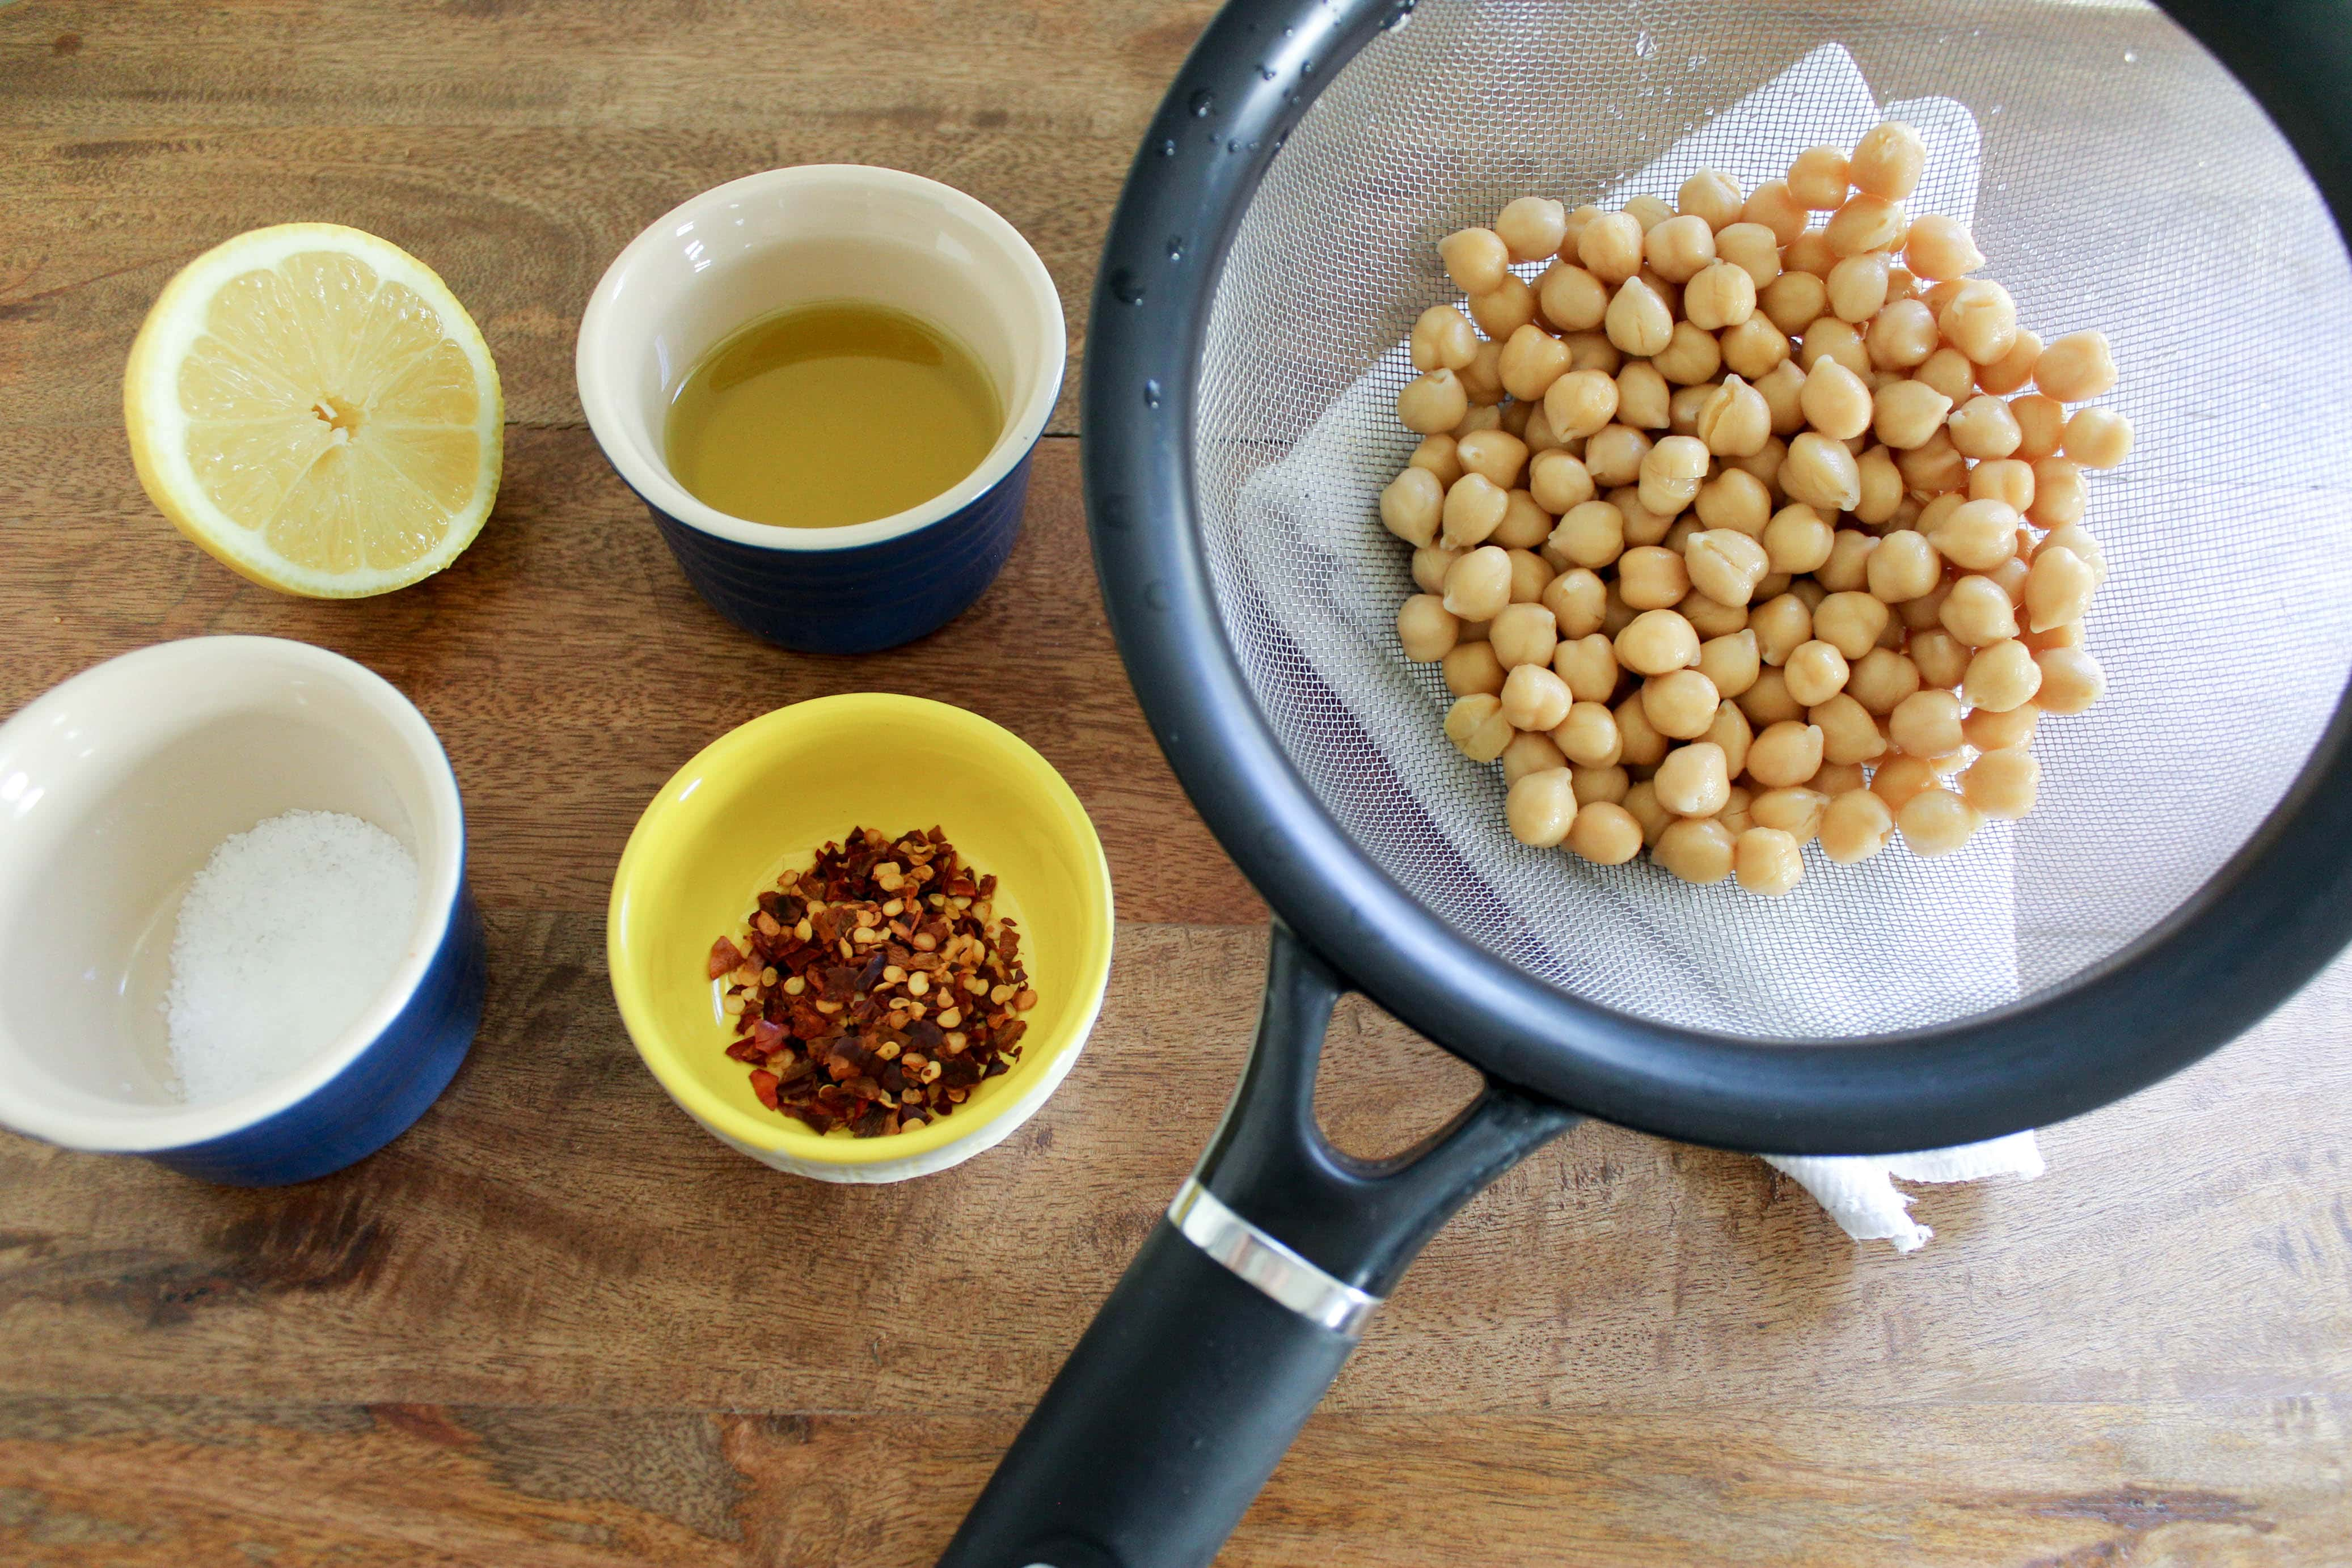 ingredients for marinated chickpeas with lemon juice